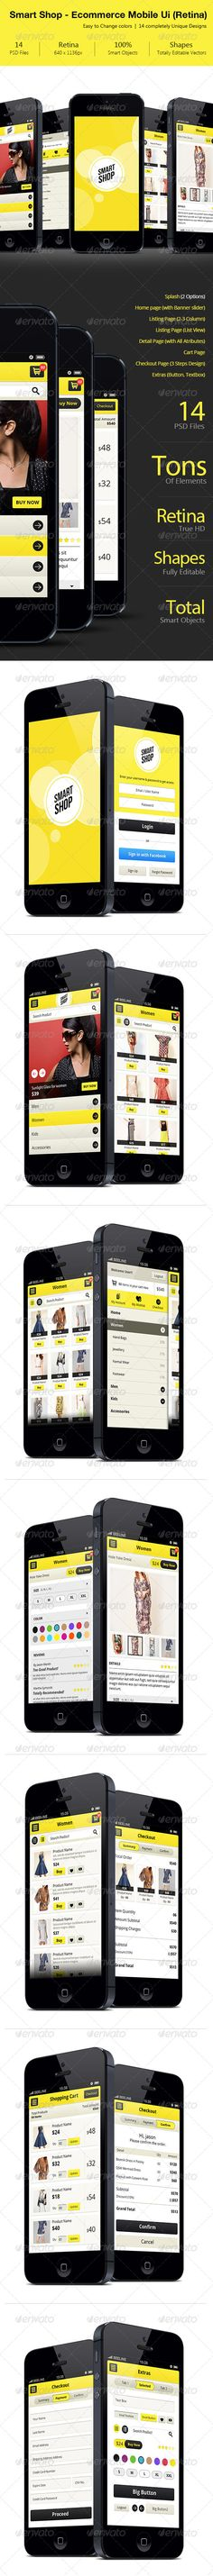 Smart Shop E-commerce Retina Mobile Ui   #GraphicRiver         a very unique User Interface only focused for E-commerce paltform for mobile devices. Smart shop is the most common and at the same time most unique design for E-Commerce mobile website or application. you can use this design for mobile version of magento, oscommerce or anyother E commerce platform.  Main Features of this design   14 PSD Files  True Retina   According to latest mobile version  Fully editable layers  Totally…